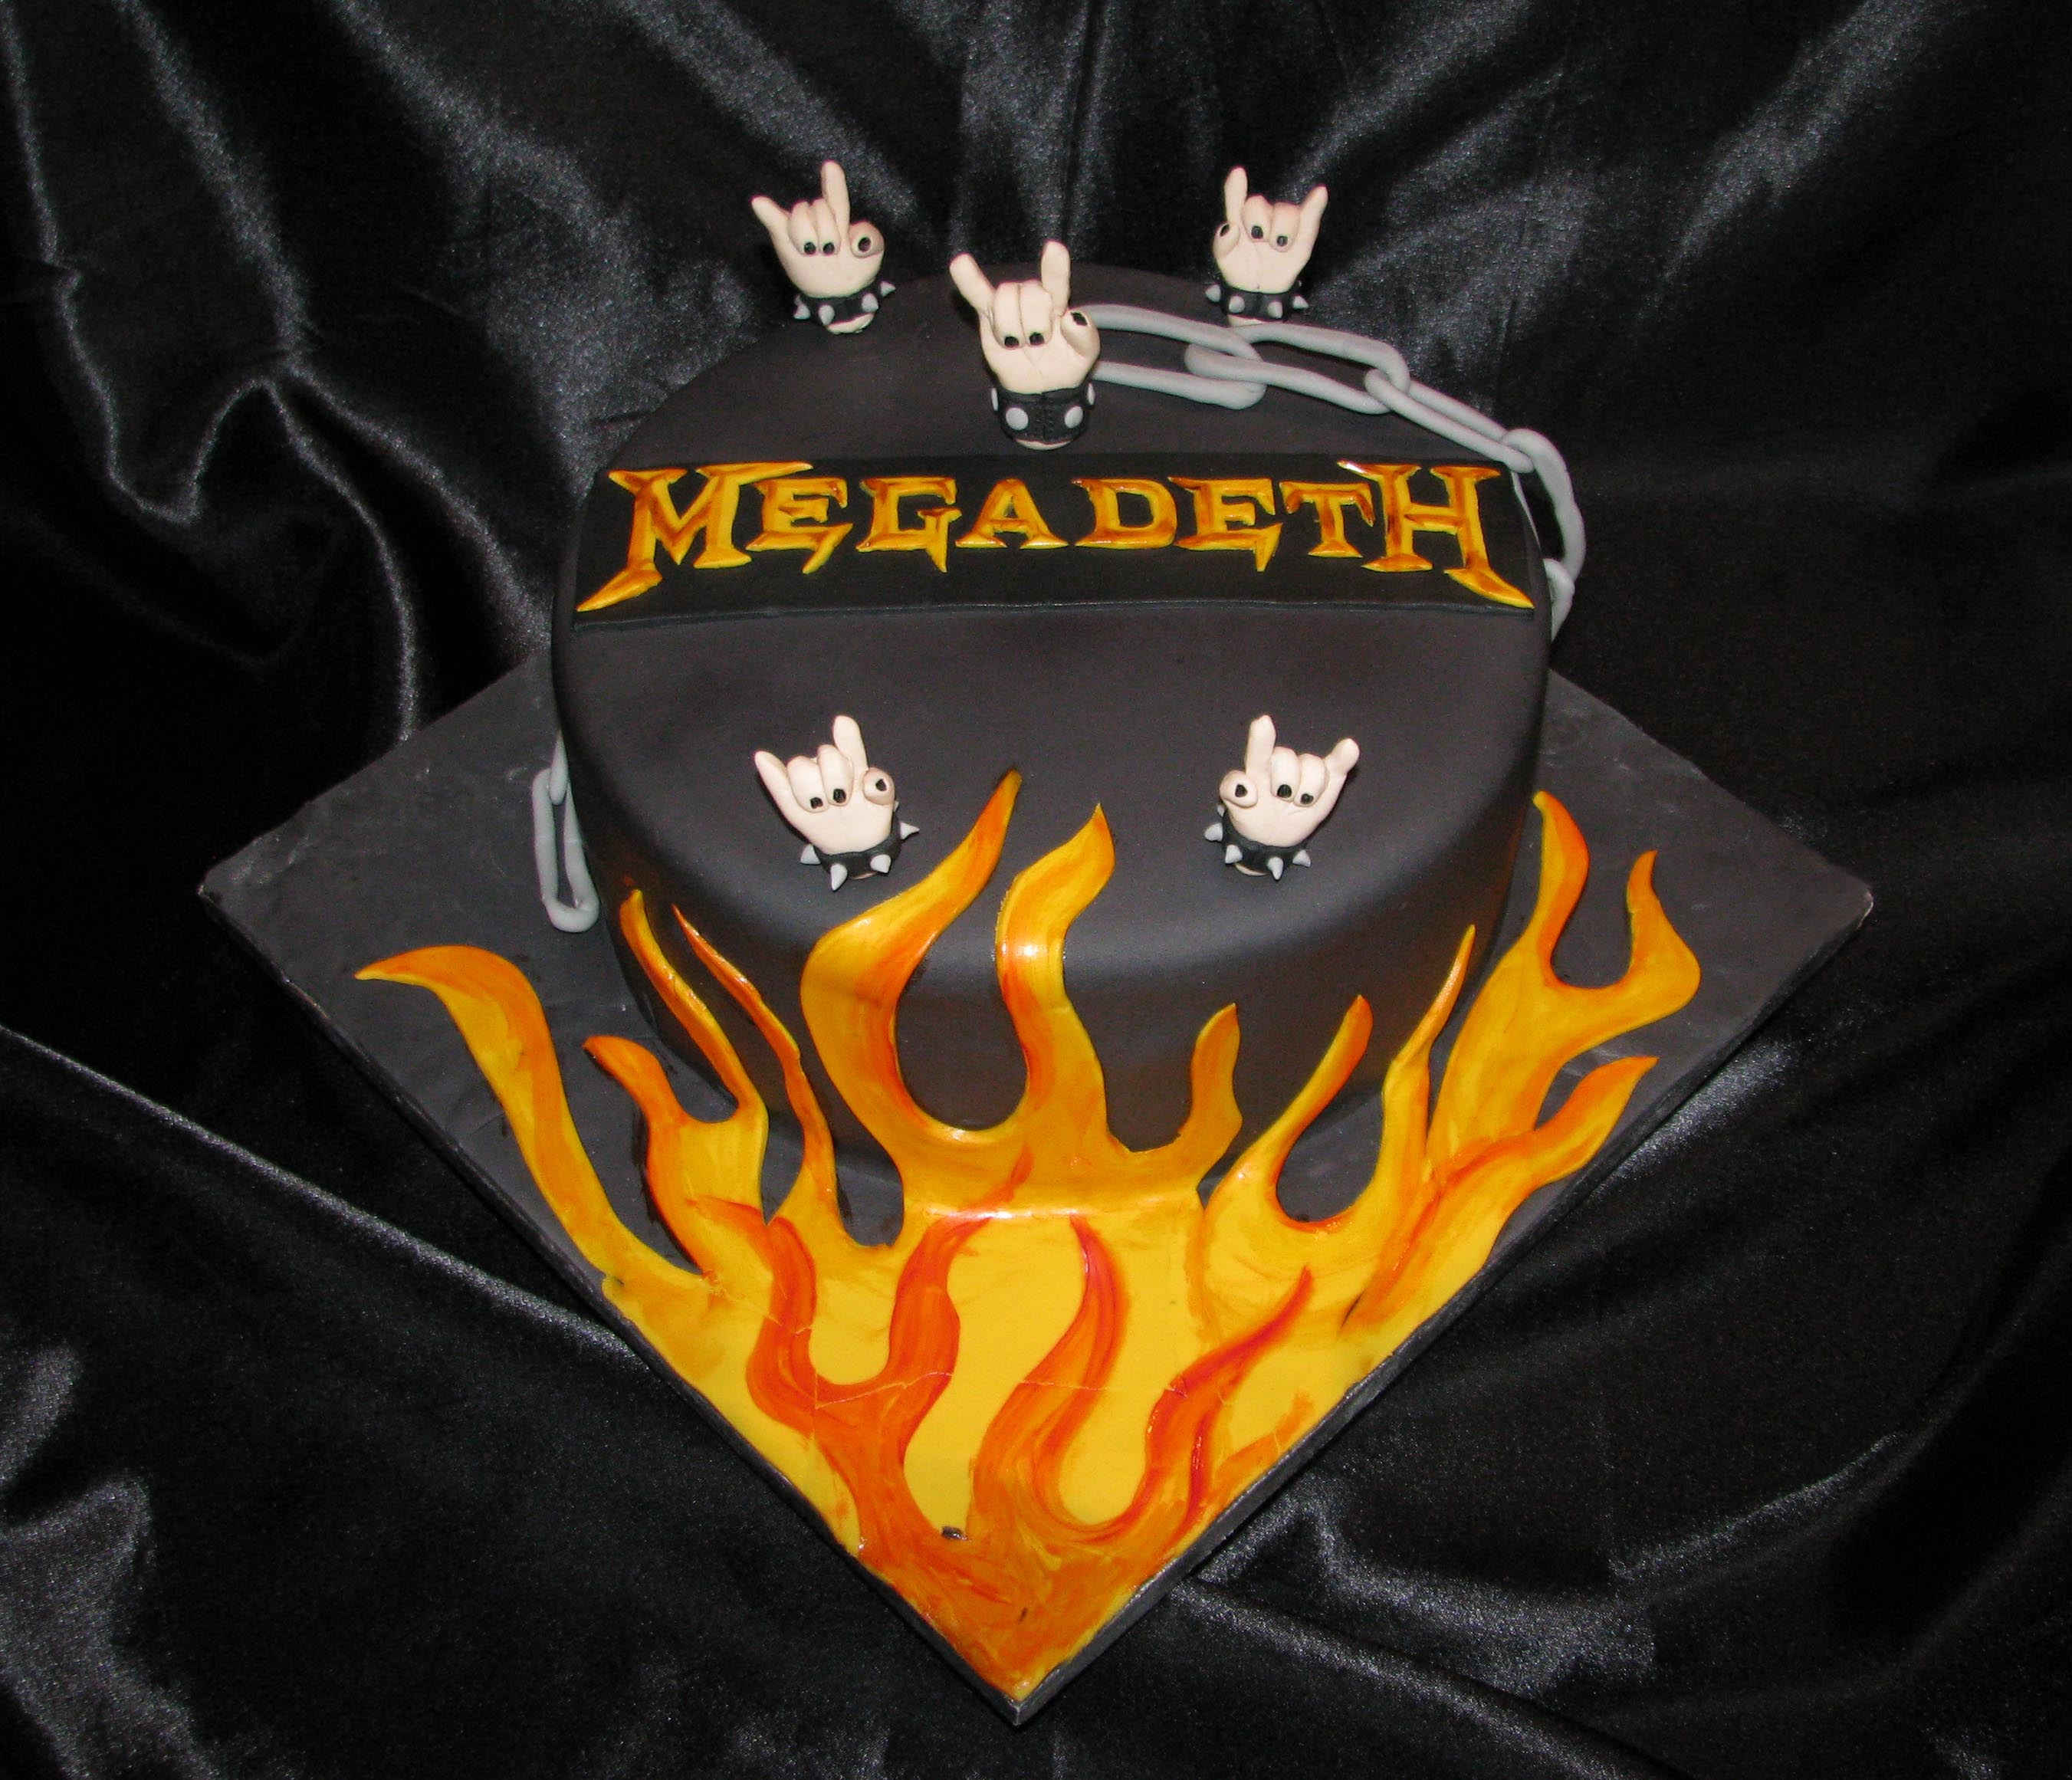 Megadeth Birthday Cake